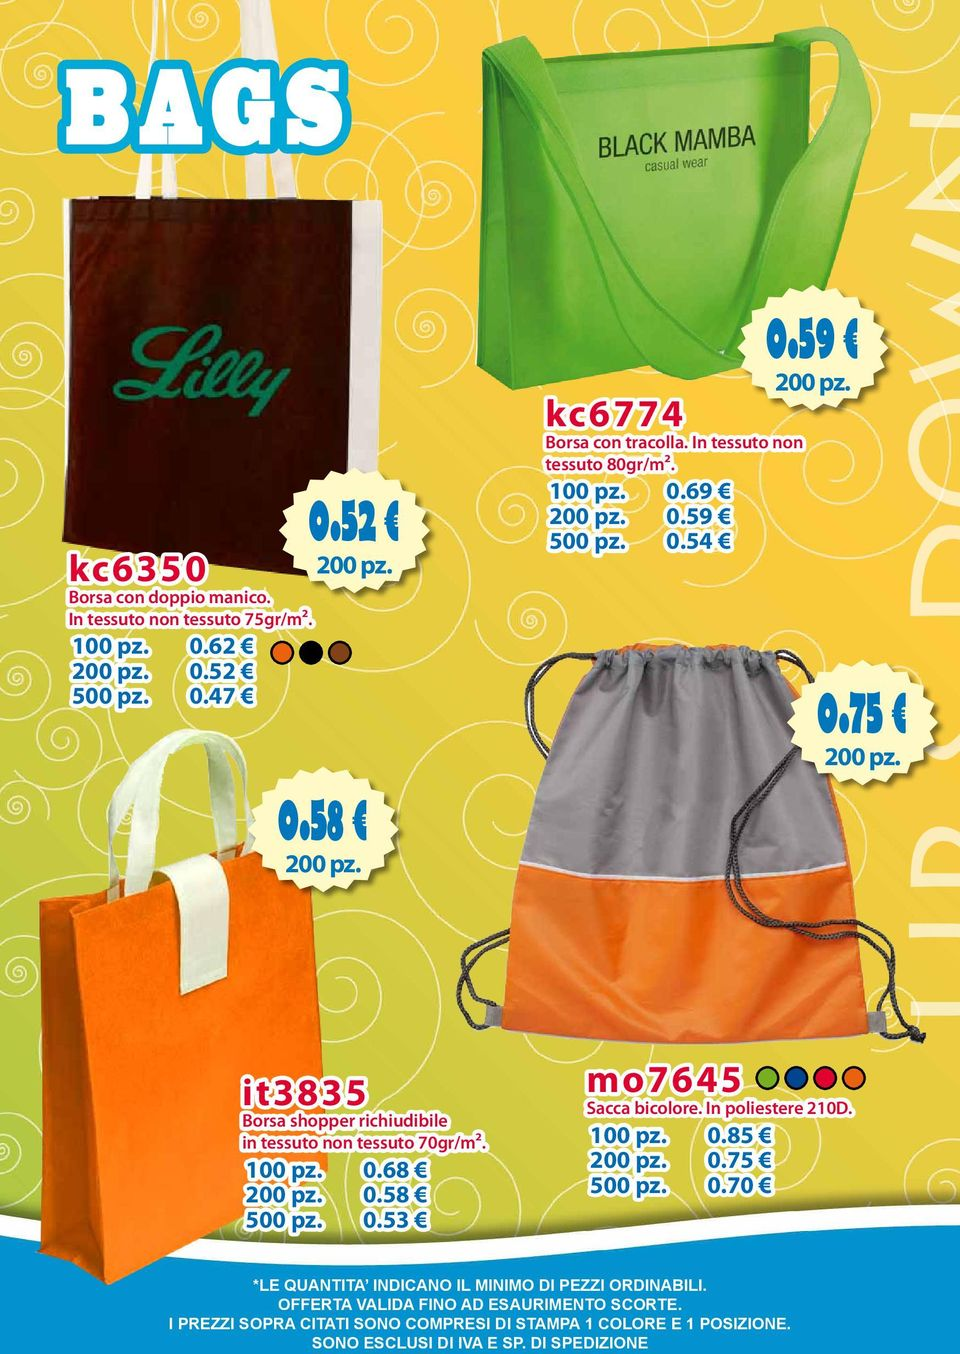 59 500 pz. 0.54 0.59 0.75 it3835 Borsa shopper richiudibile in tessuto non tessuto 70gr/m².